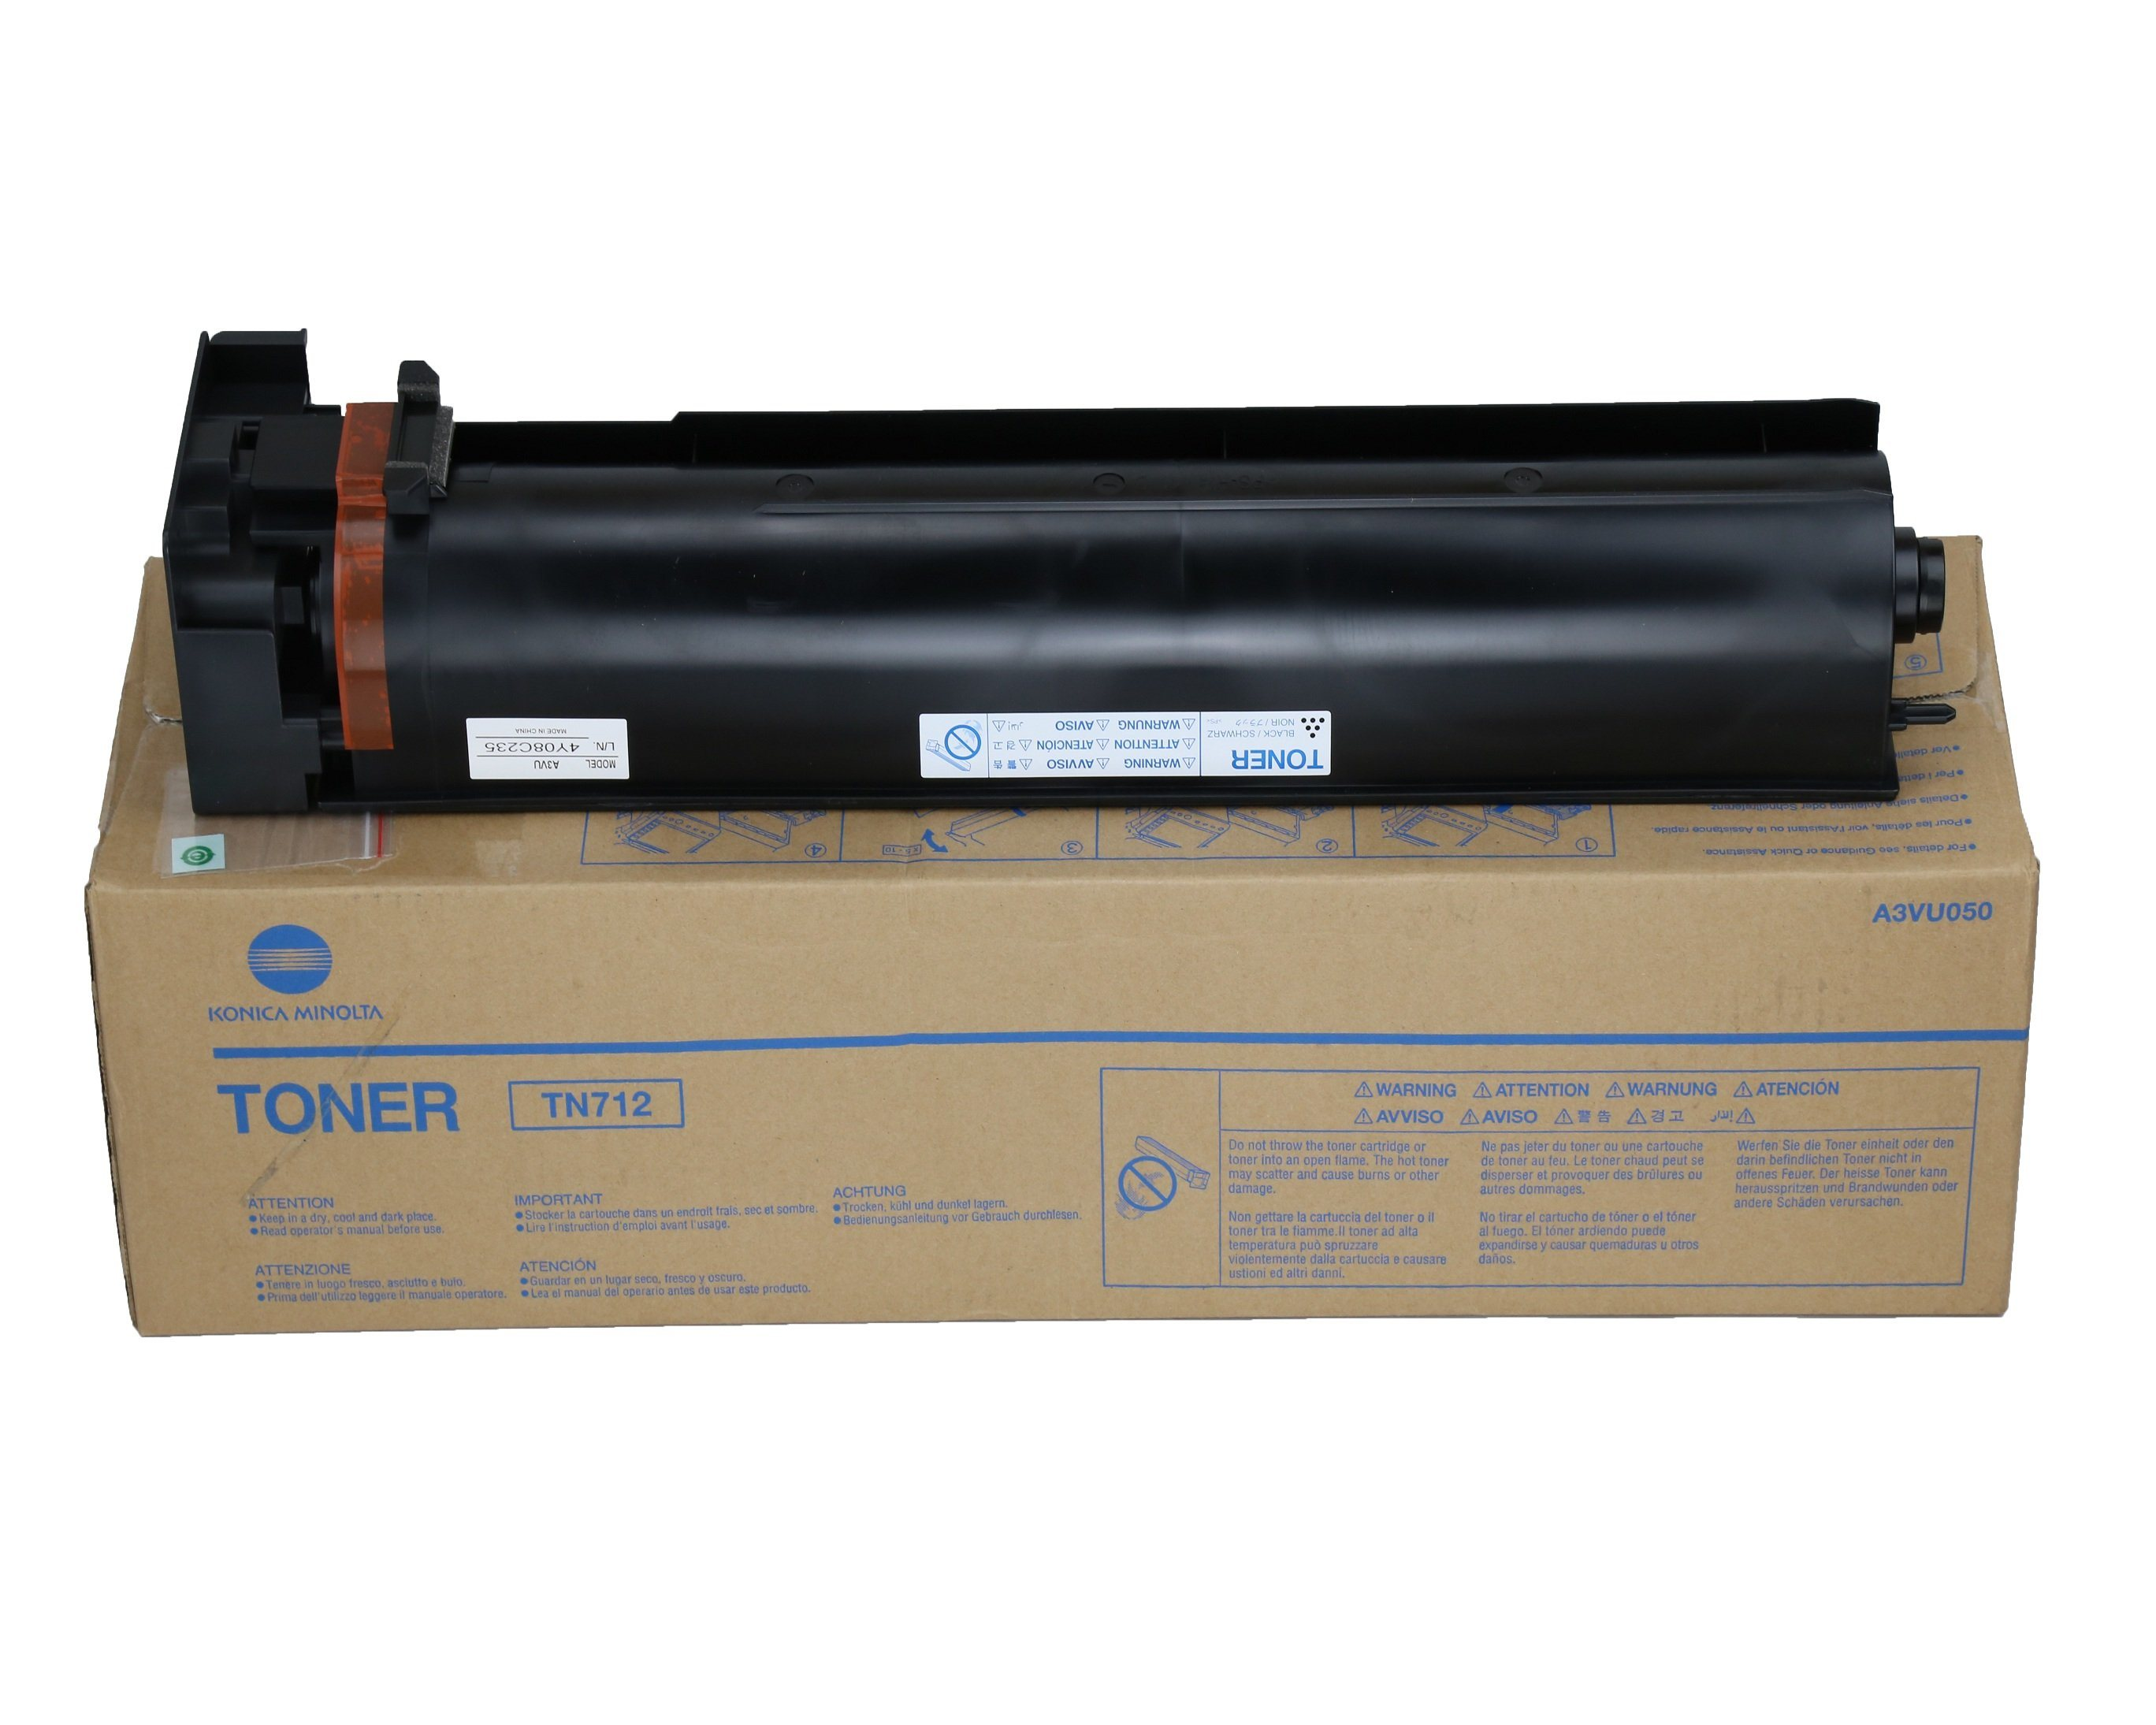 China New Compatible Toner Cartridge Tn712 for Konica Minolta Bizhub  654/654e/754/754e - China Konica Minolta Toner Cartridge, Tn712